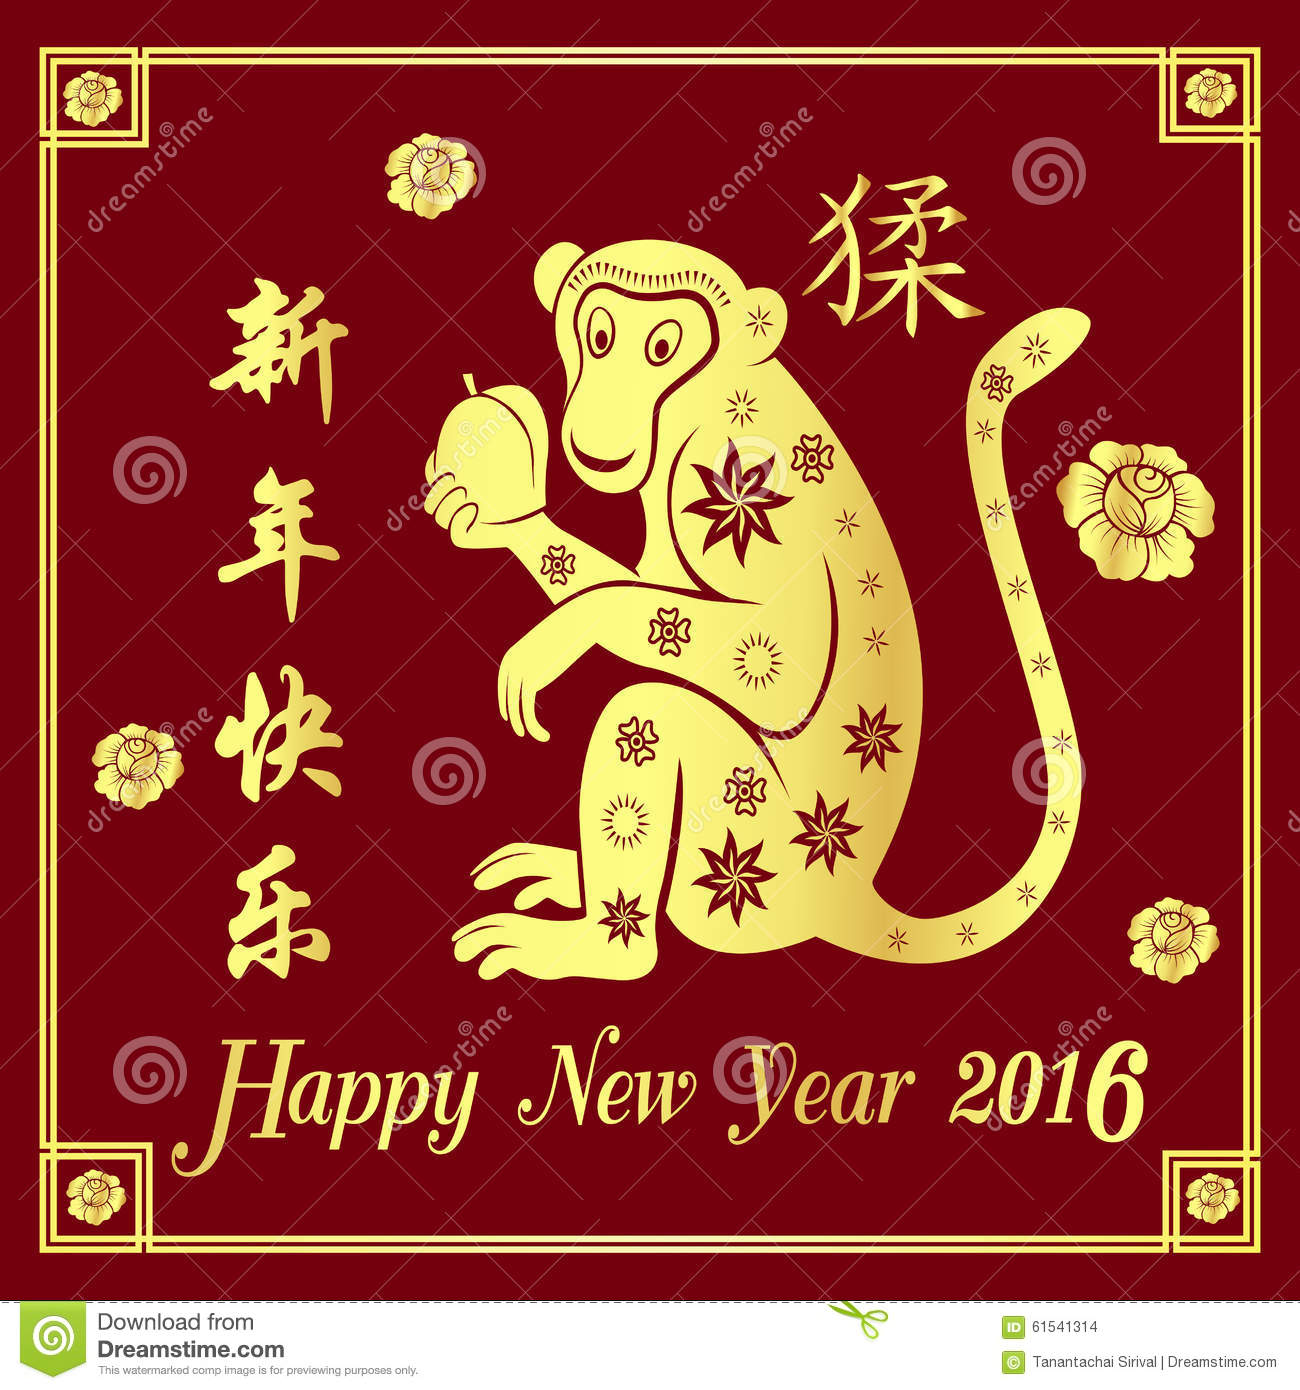 Chinese new year card, Monkey holding a fruit in golden color.